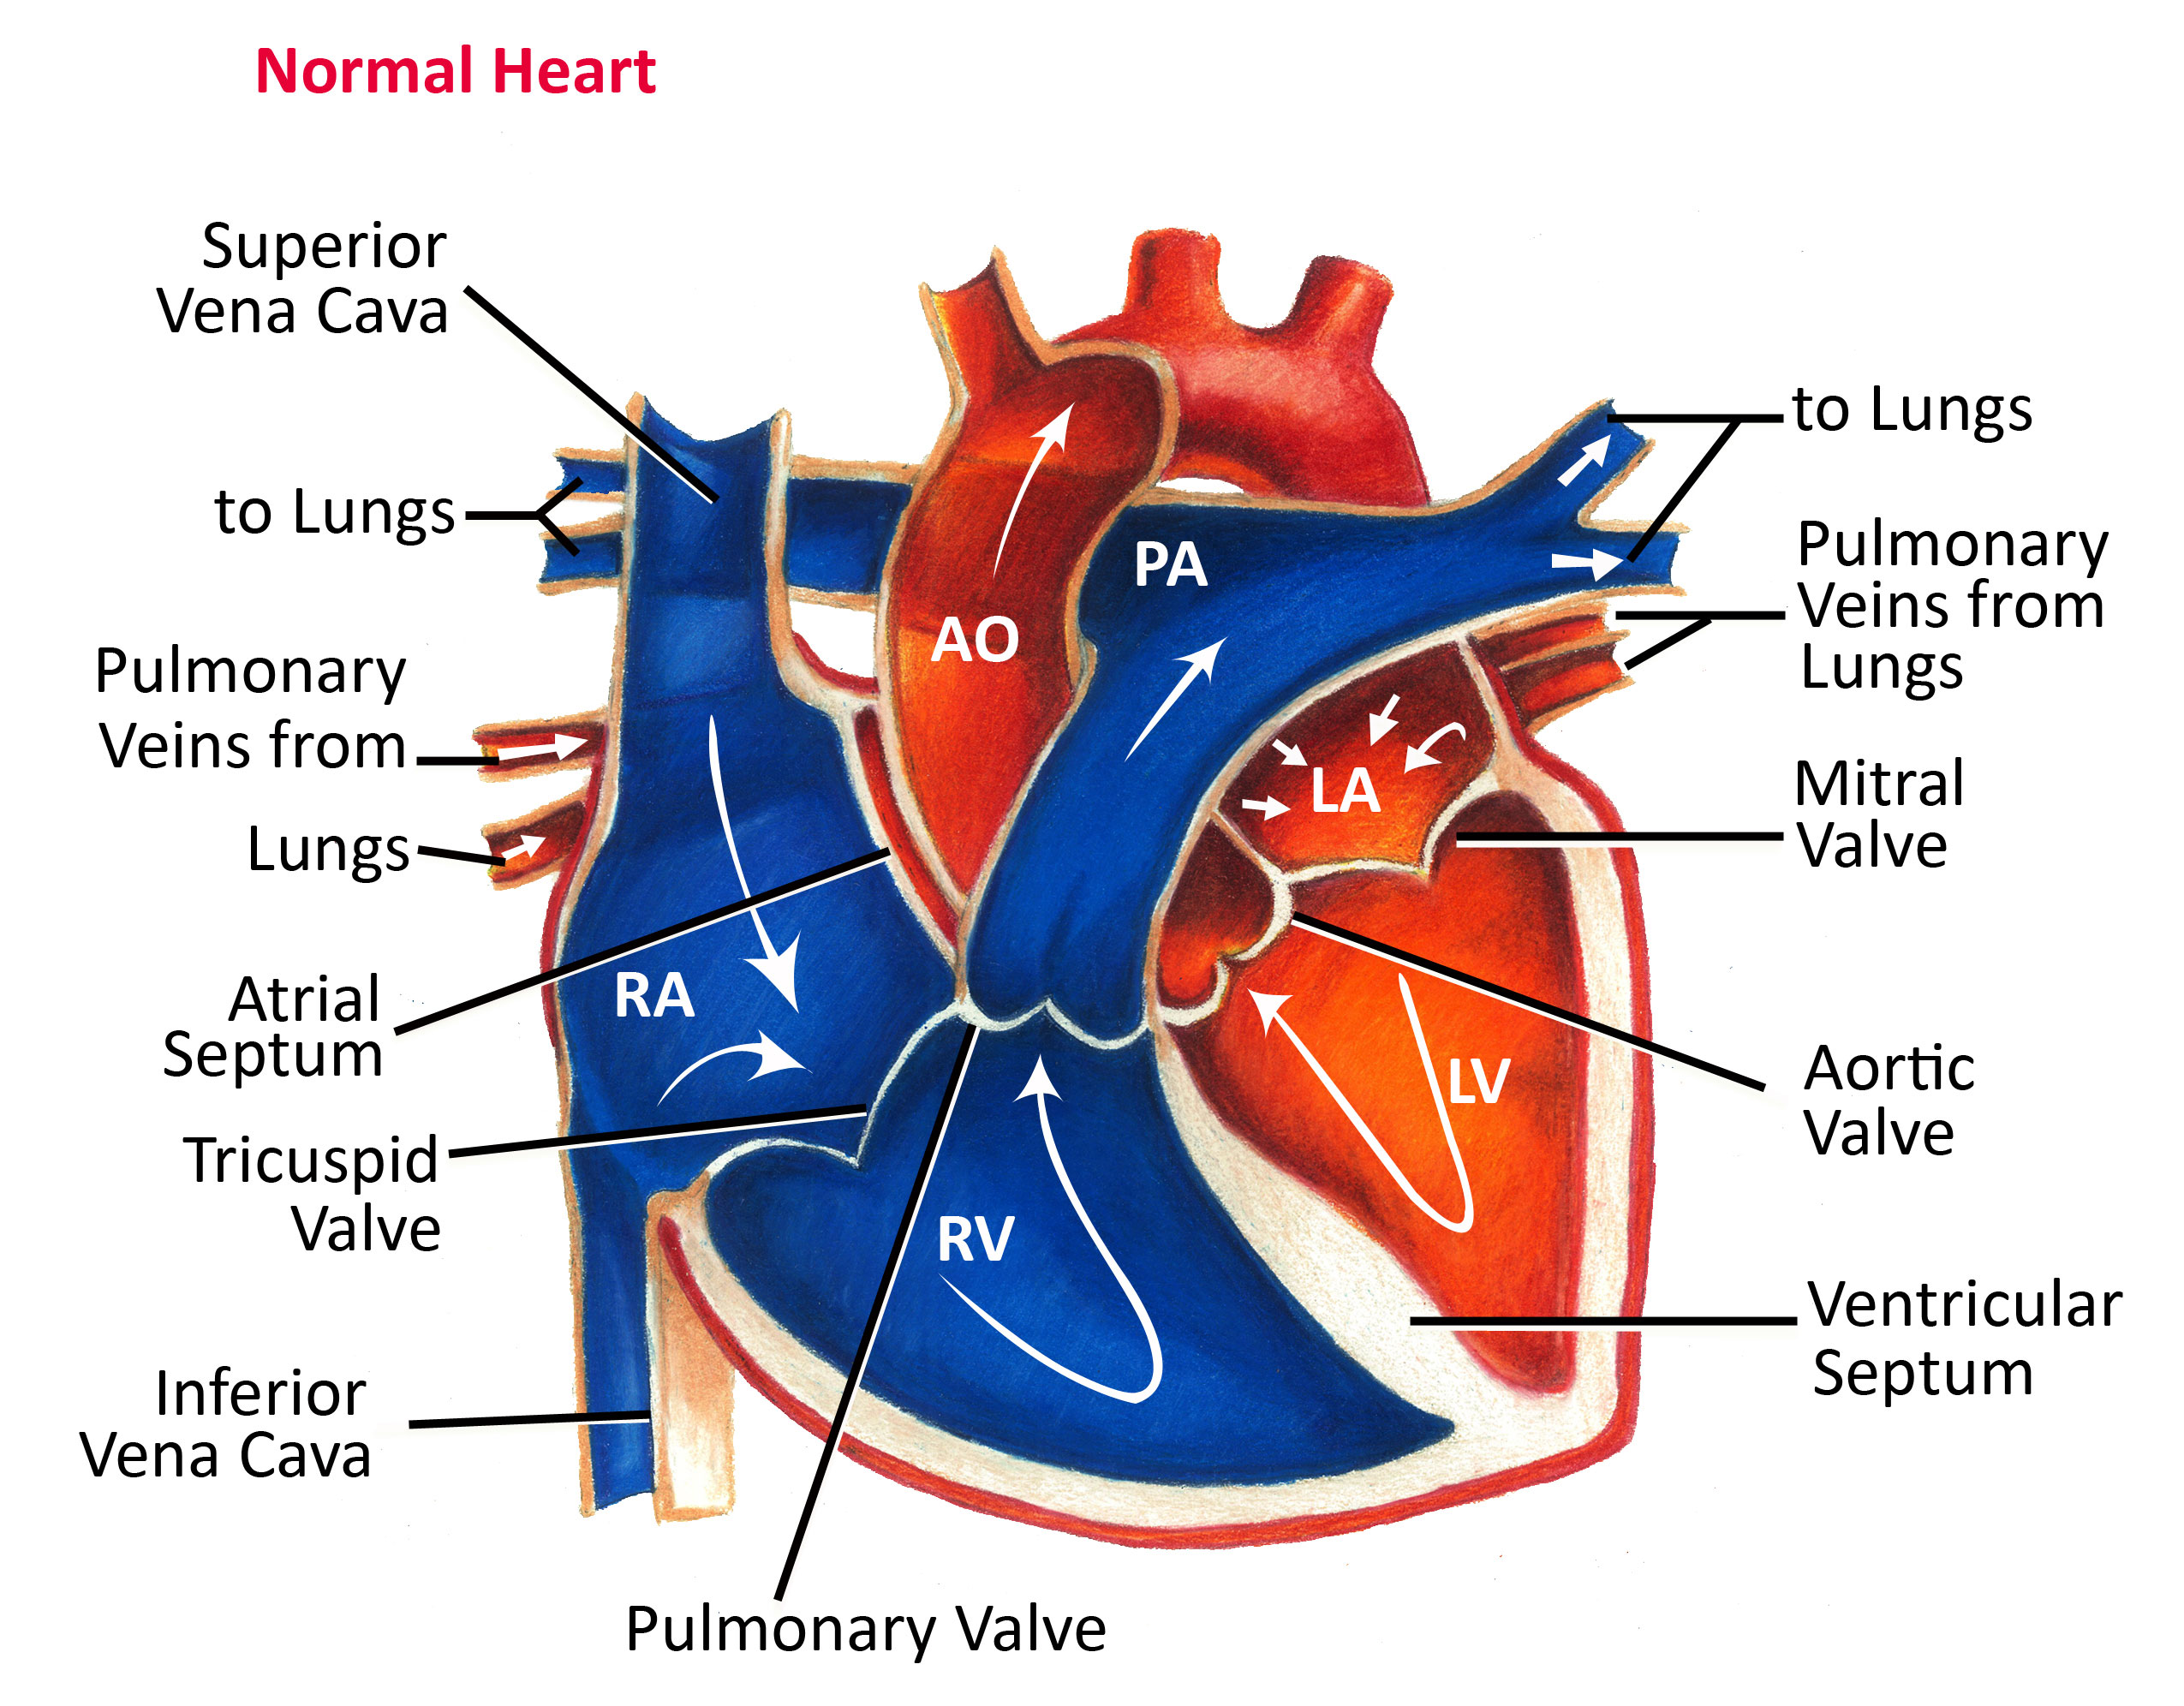 normal heart anatomy and blood flow - pediatric heart specialists, Cephalic vein